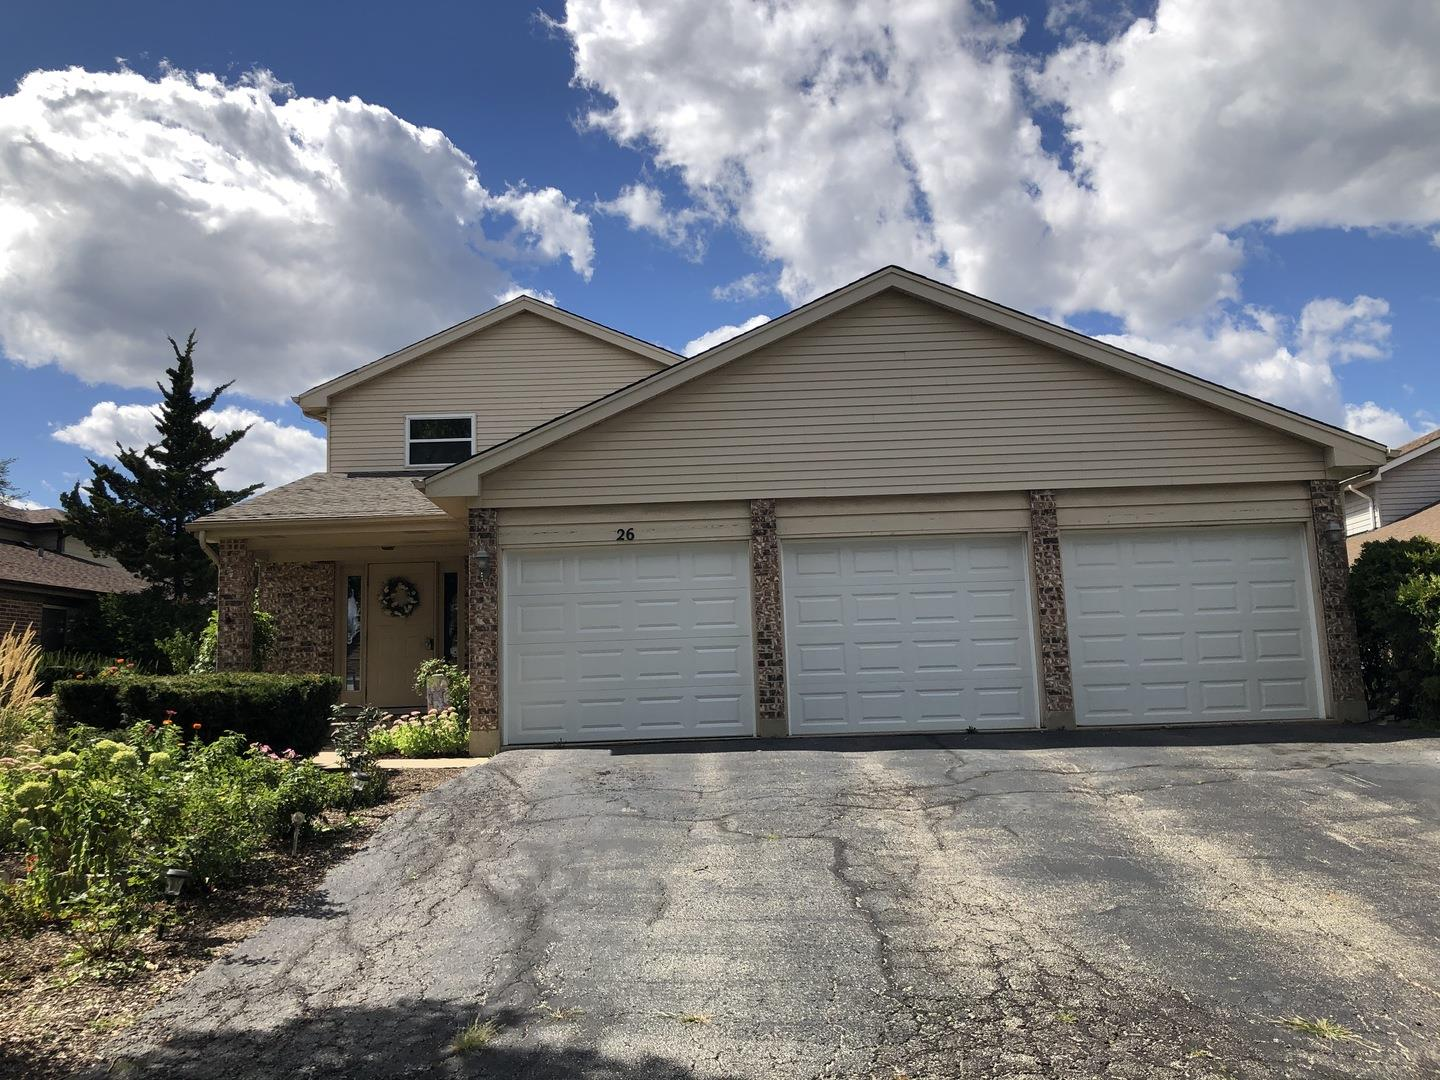 26 Terry Drive #A, Roselle, IL 60172 - #: 10902197